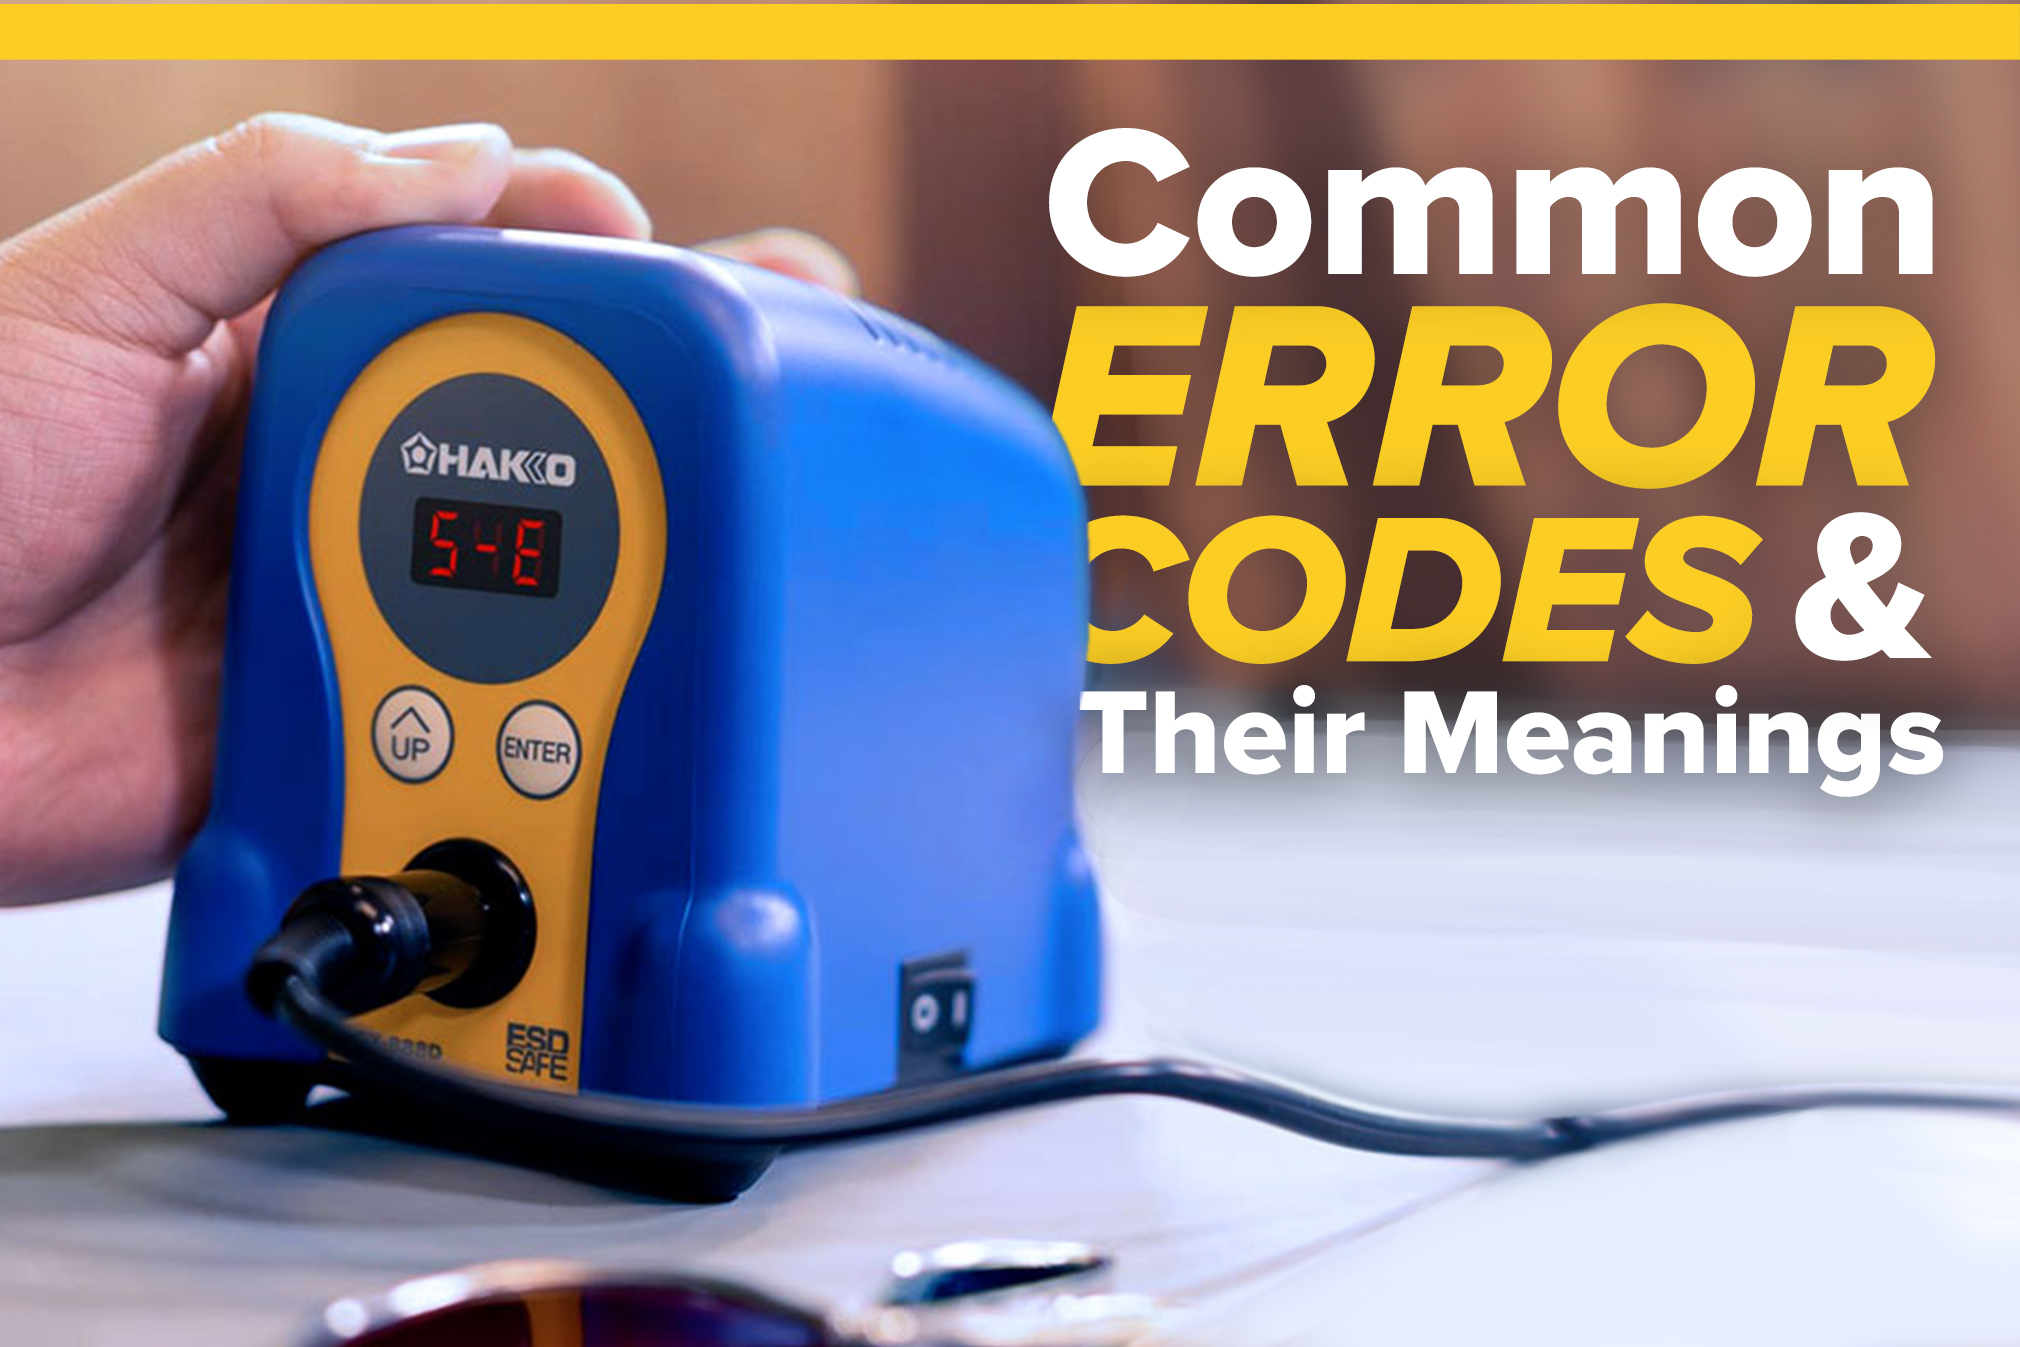 Common Error Codes and Their Meanings